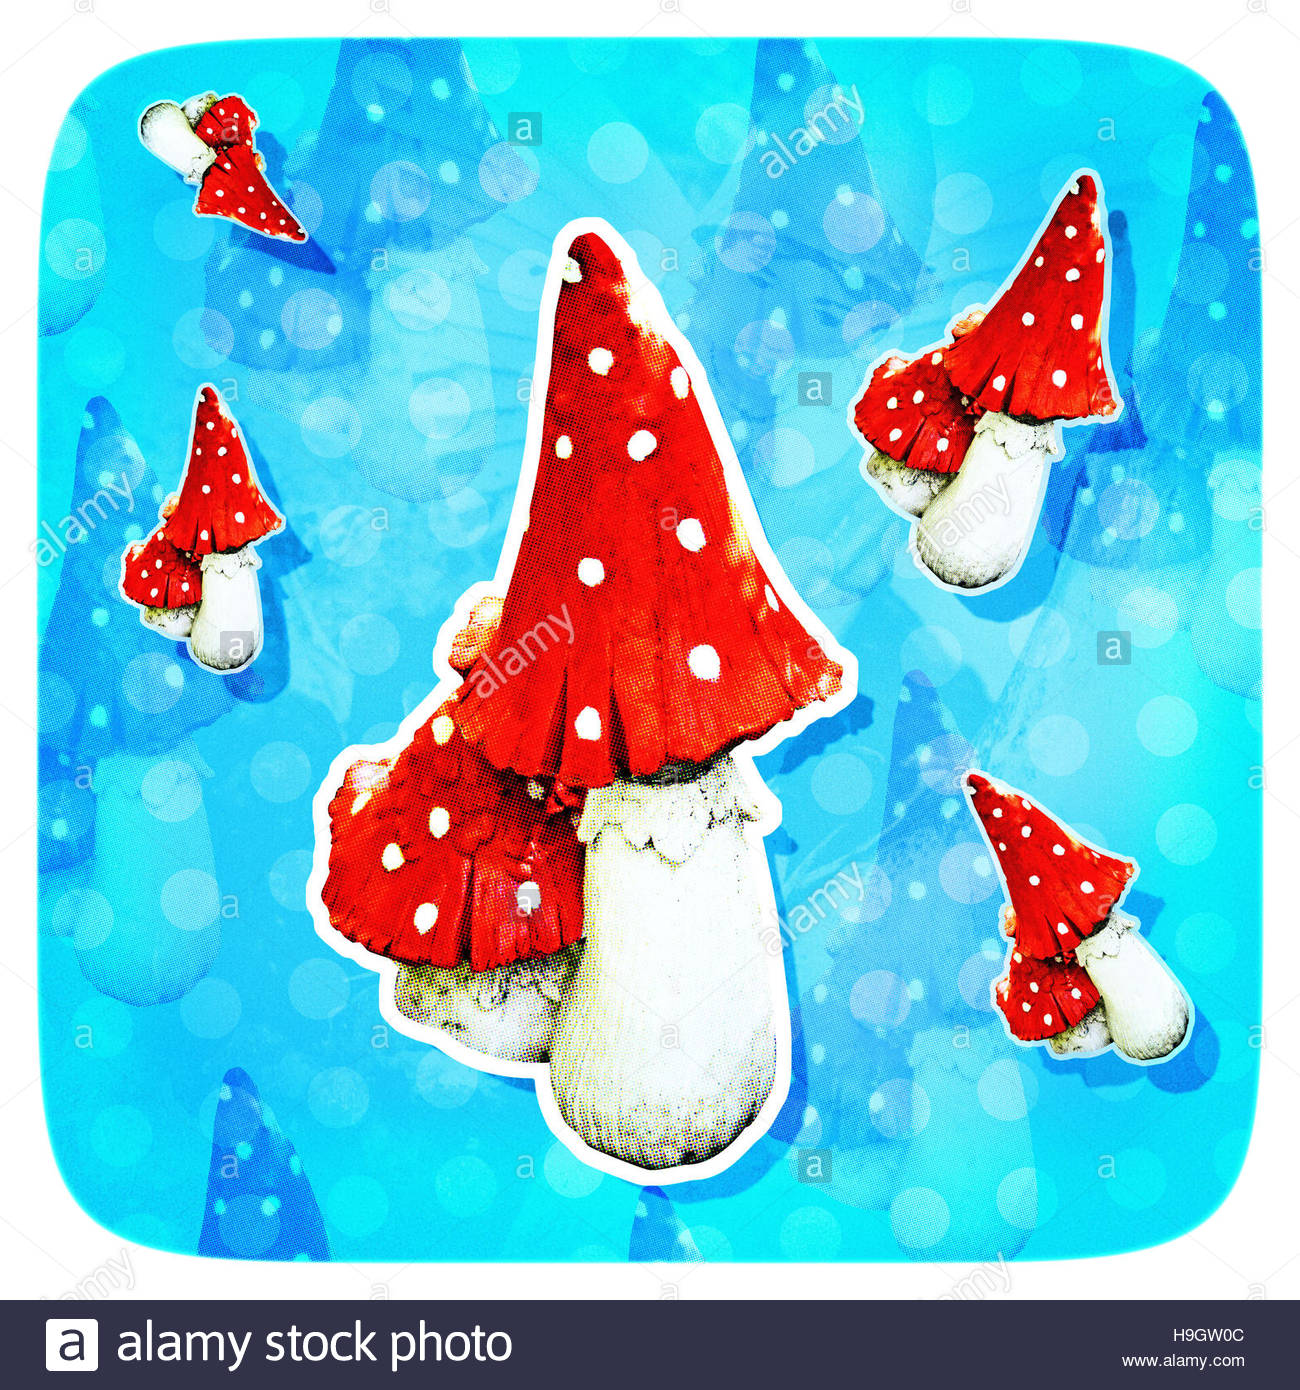 Magic Mushrooms kitsch pixie fairy magical background - Stock Image